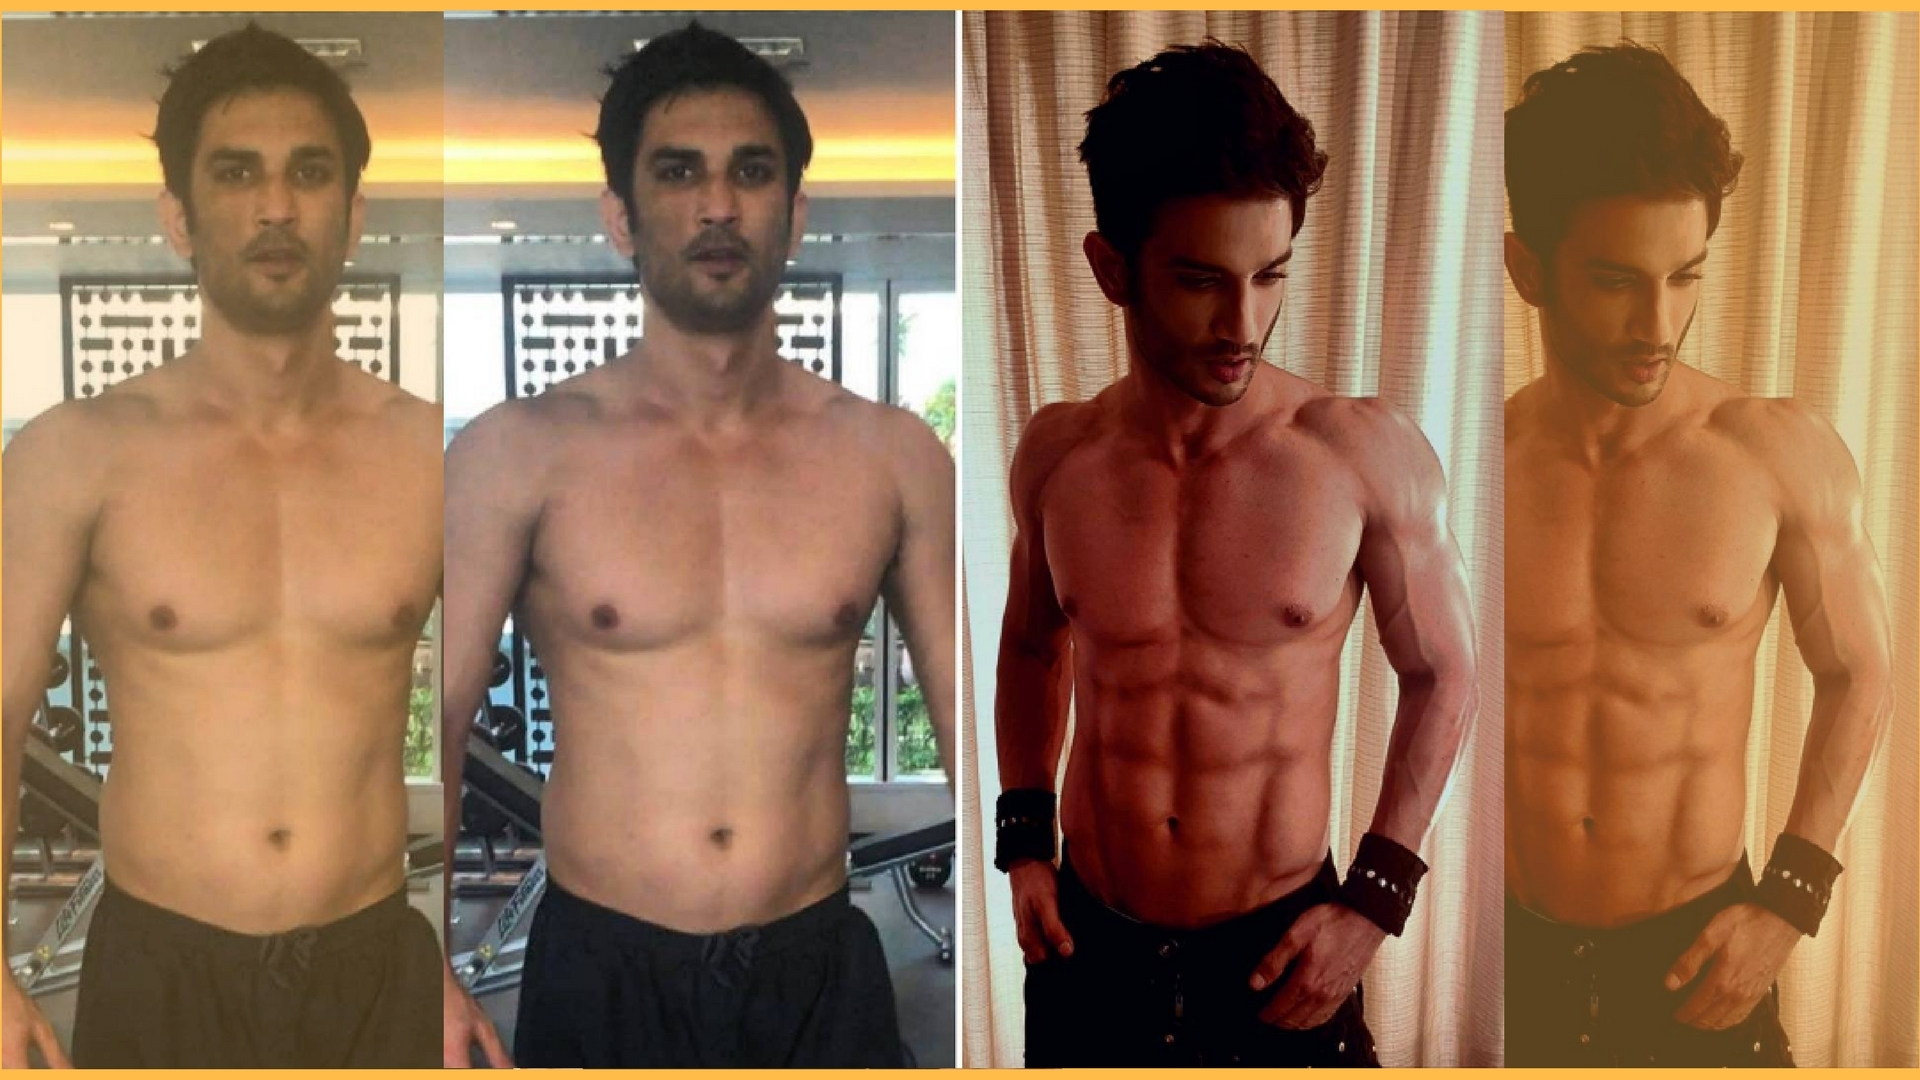 In Pics: How Sushant Singh Rajput Got His 8 Pack - The Quint